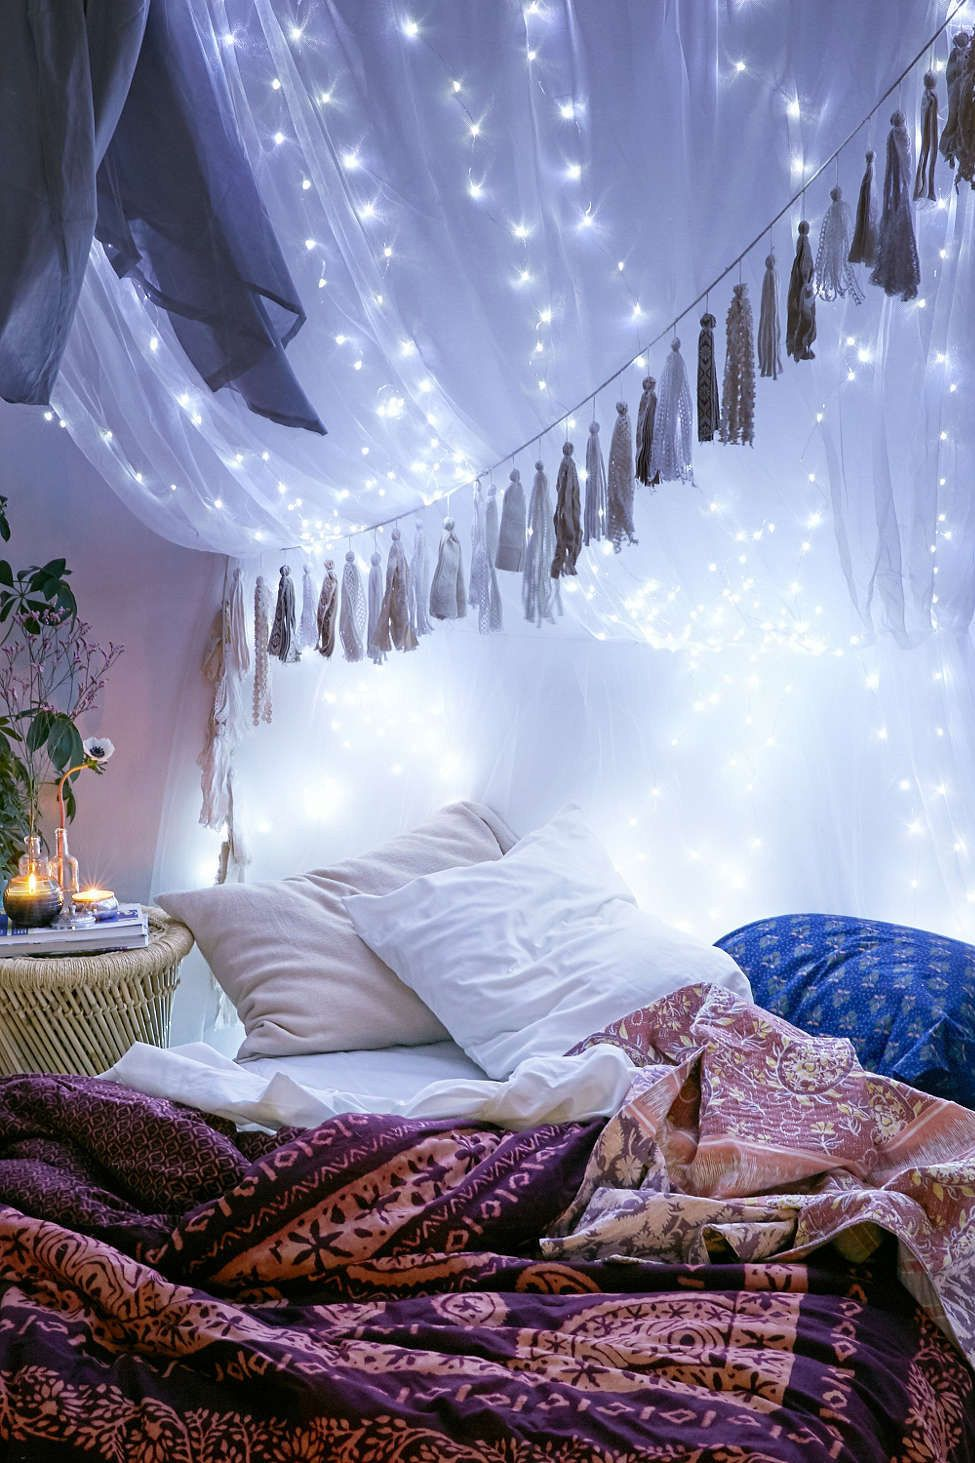 To seriously upgrade your sleeping situation, drape lights